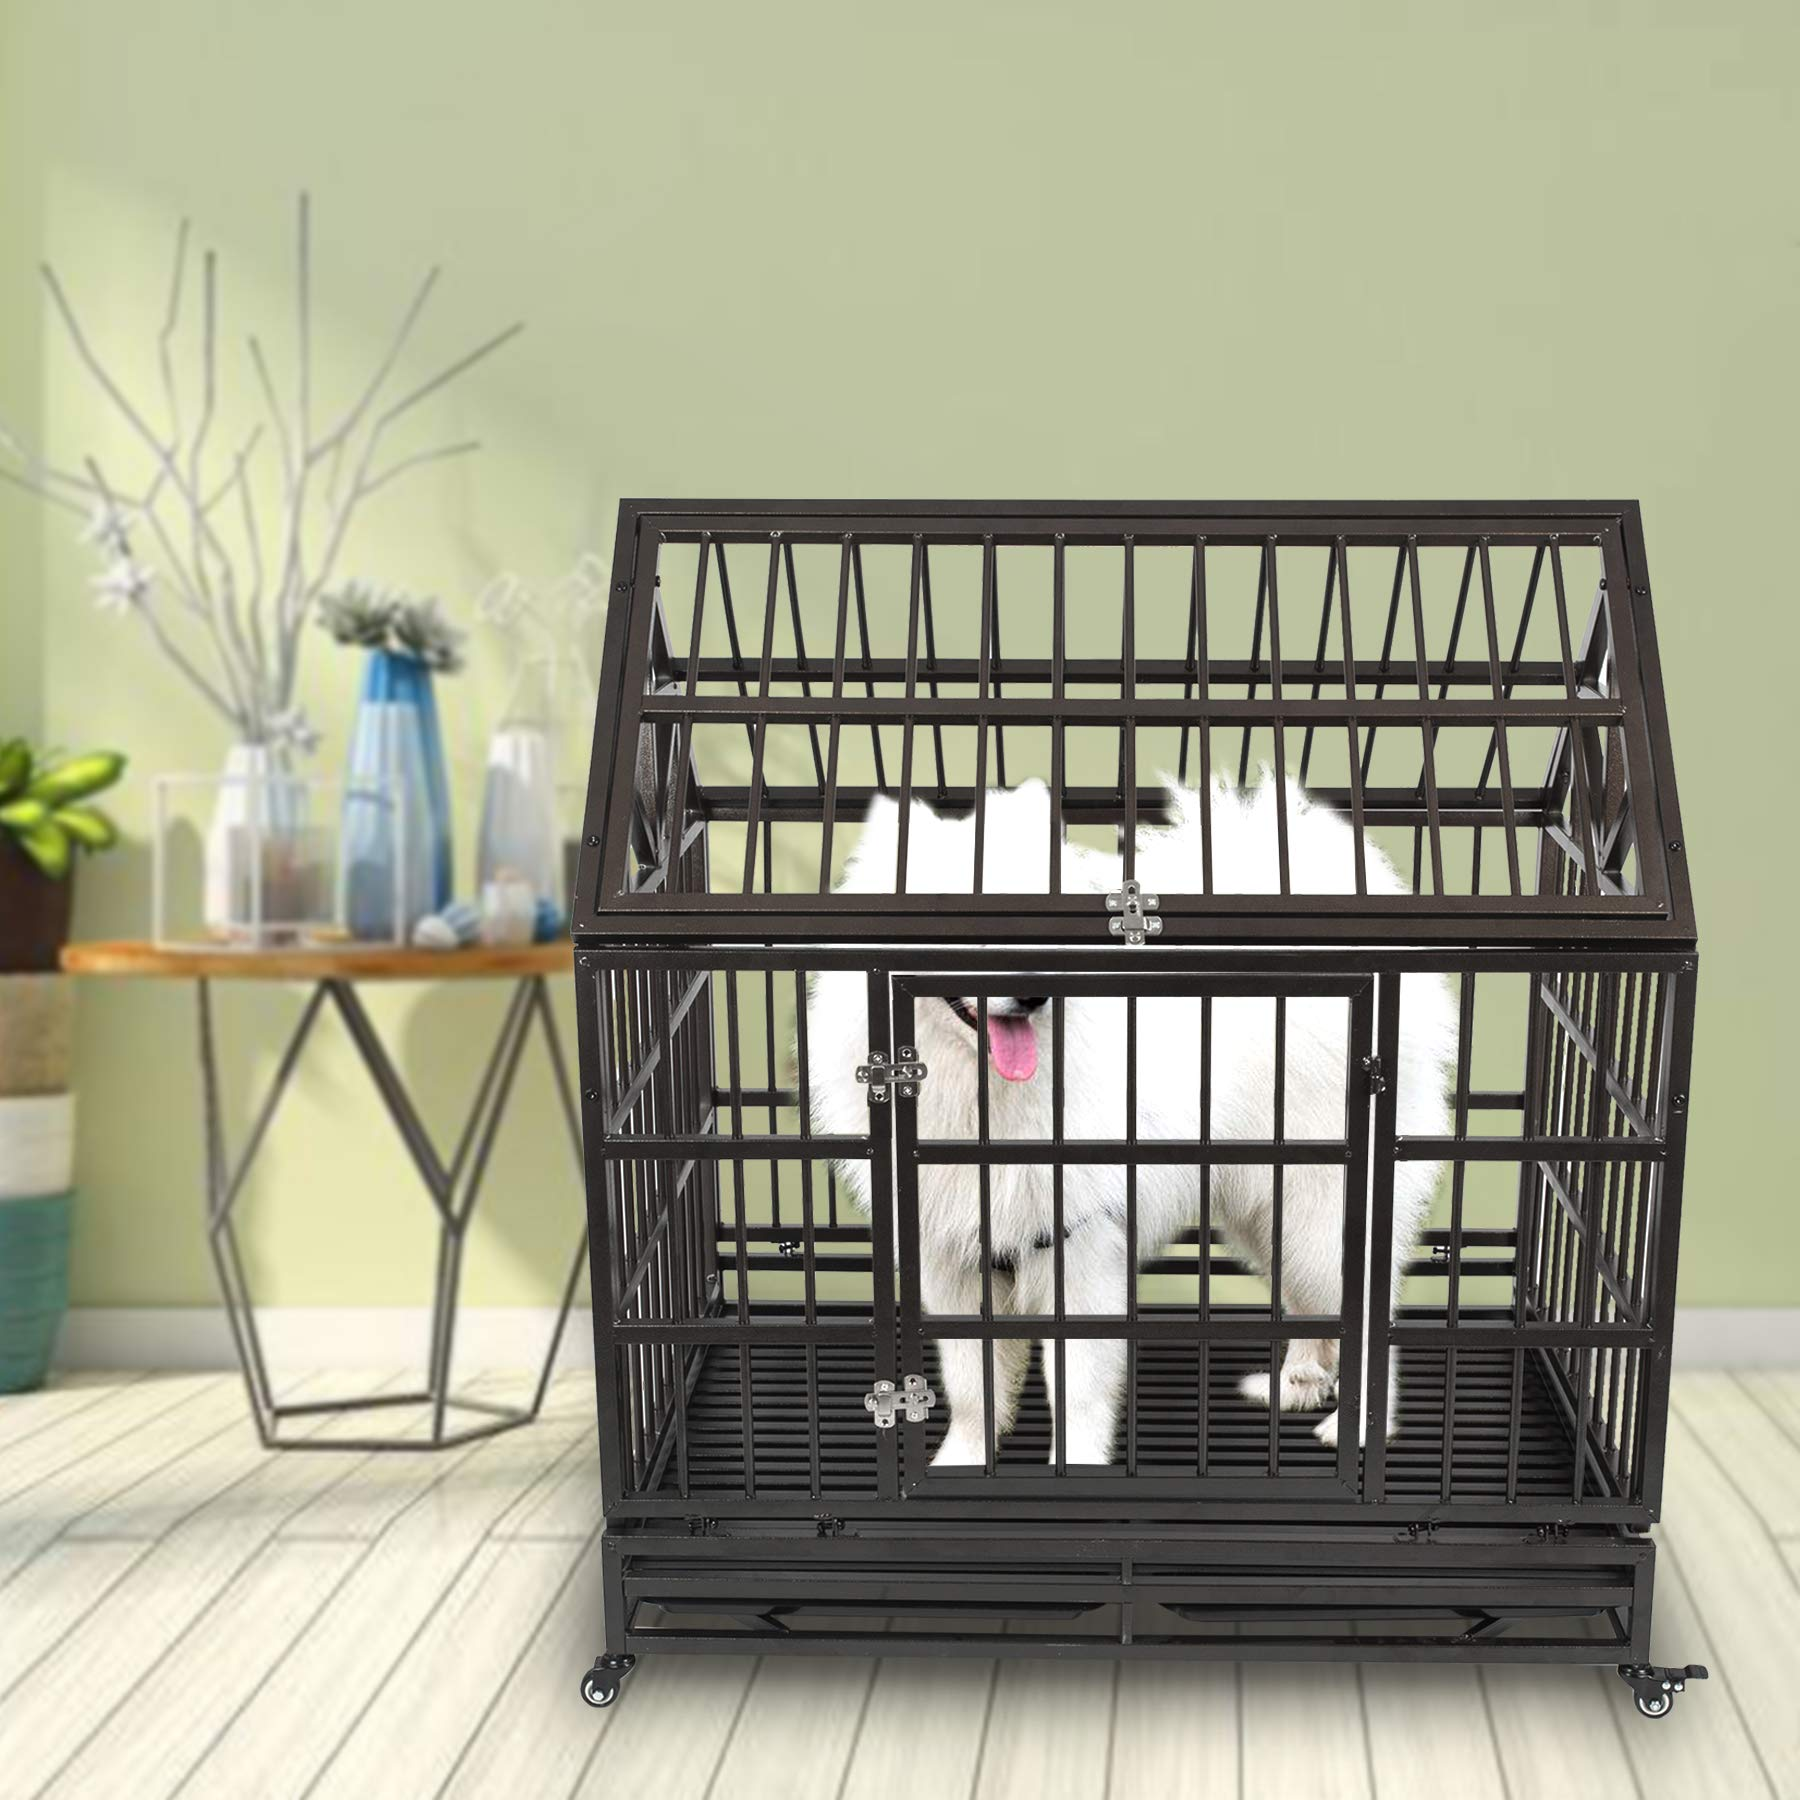 Haige Pet Your Pet Nanny Heavy Duty Dog Crate Cage Kennel Strong Metal for Large Dogs, Easy to Assemble Pet Playpen with Patent Lock & Four Wheels by Haige Pet Your Pet Nanny (Image #8)